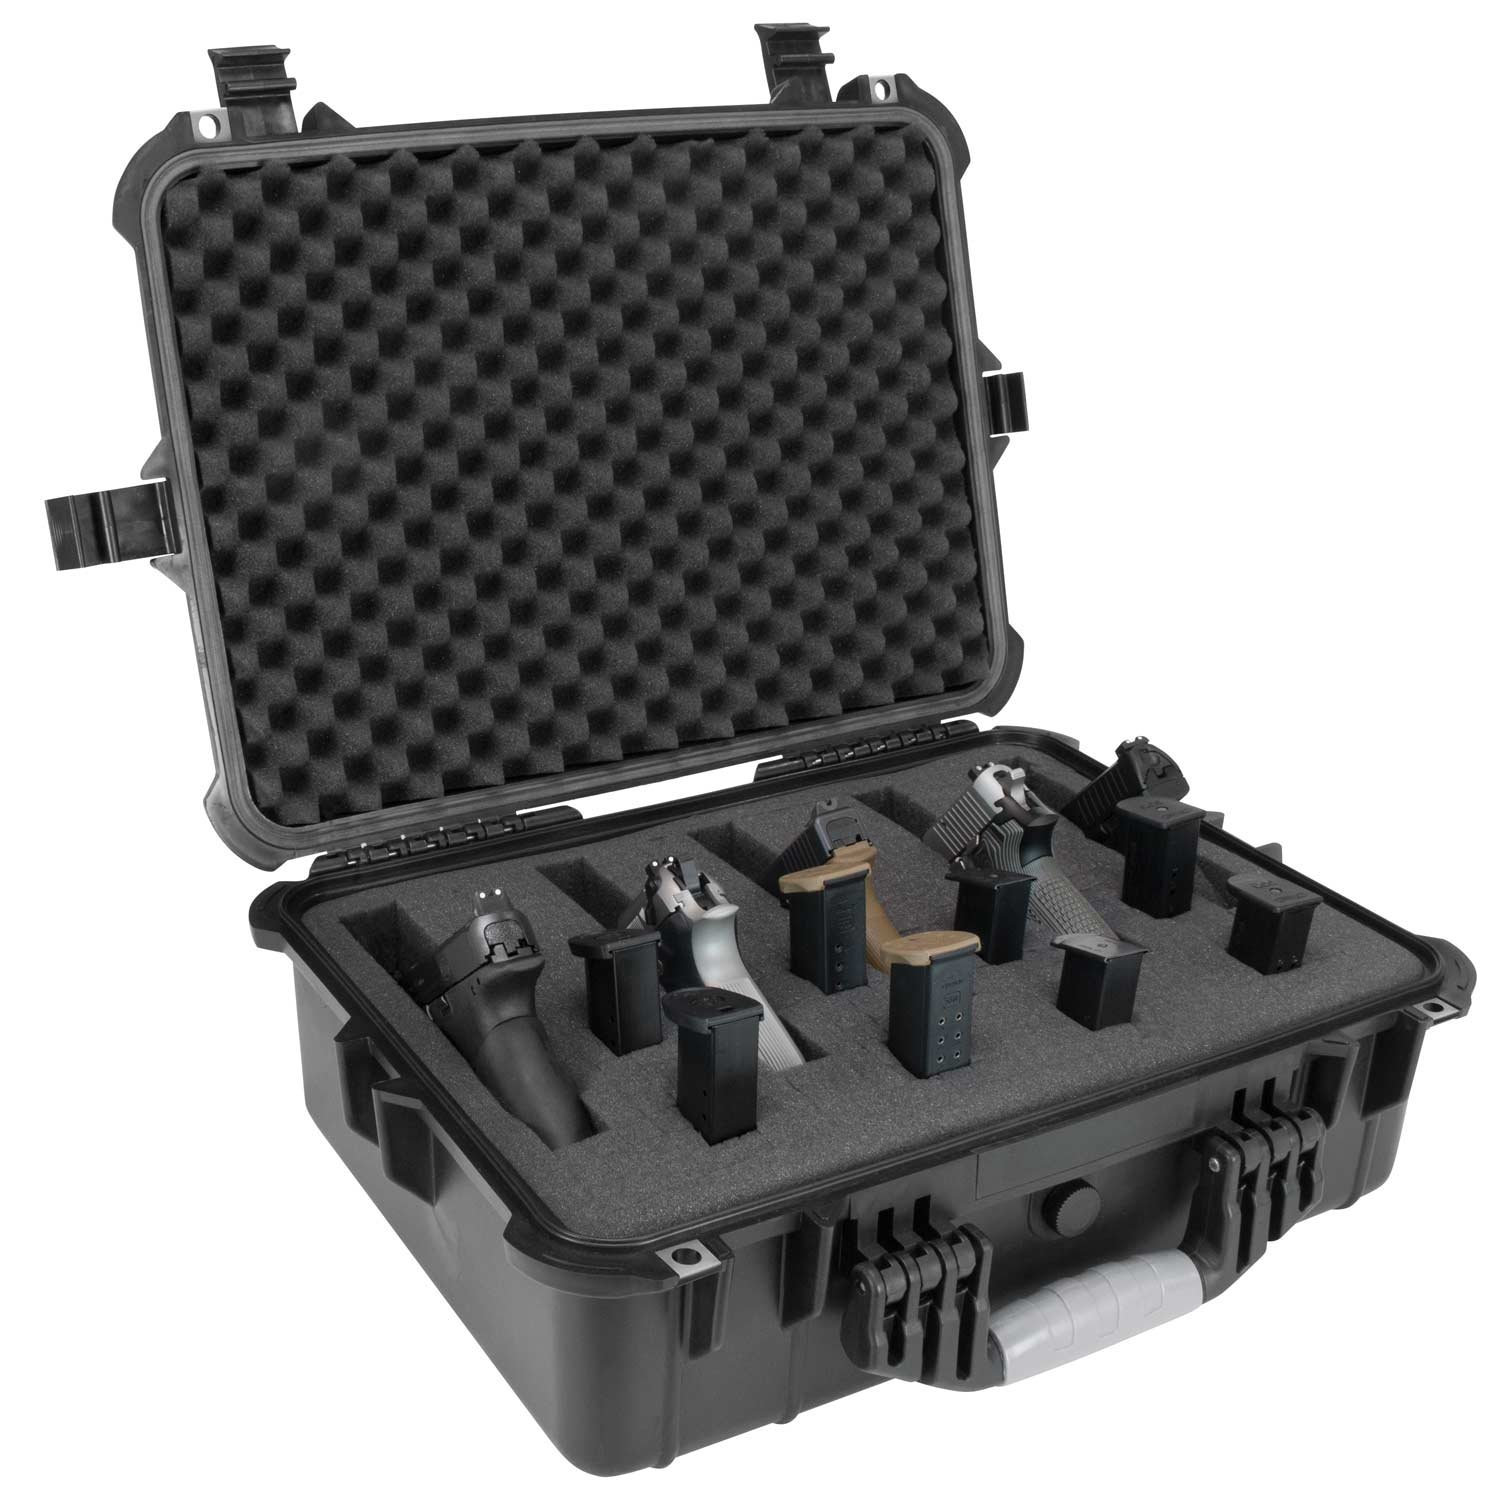 Elkton Outdoors Hard Gun Case: Fully Customizable Pistol Case: Holds 5 Handguns and 10 Magazines: Crush Resistant & Waterproof! by Elkton Outdoors (Image #4)